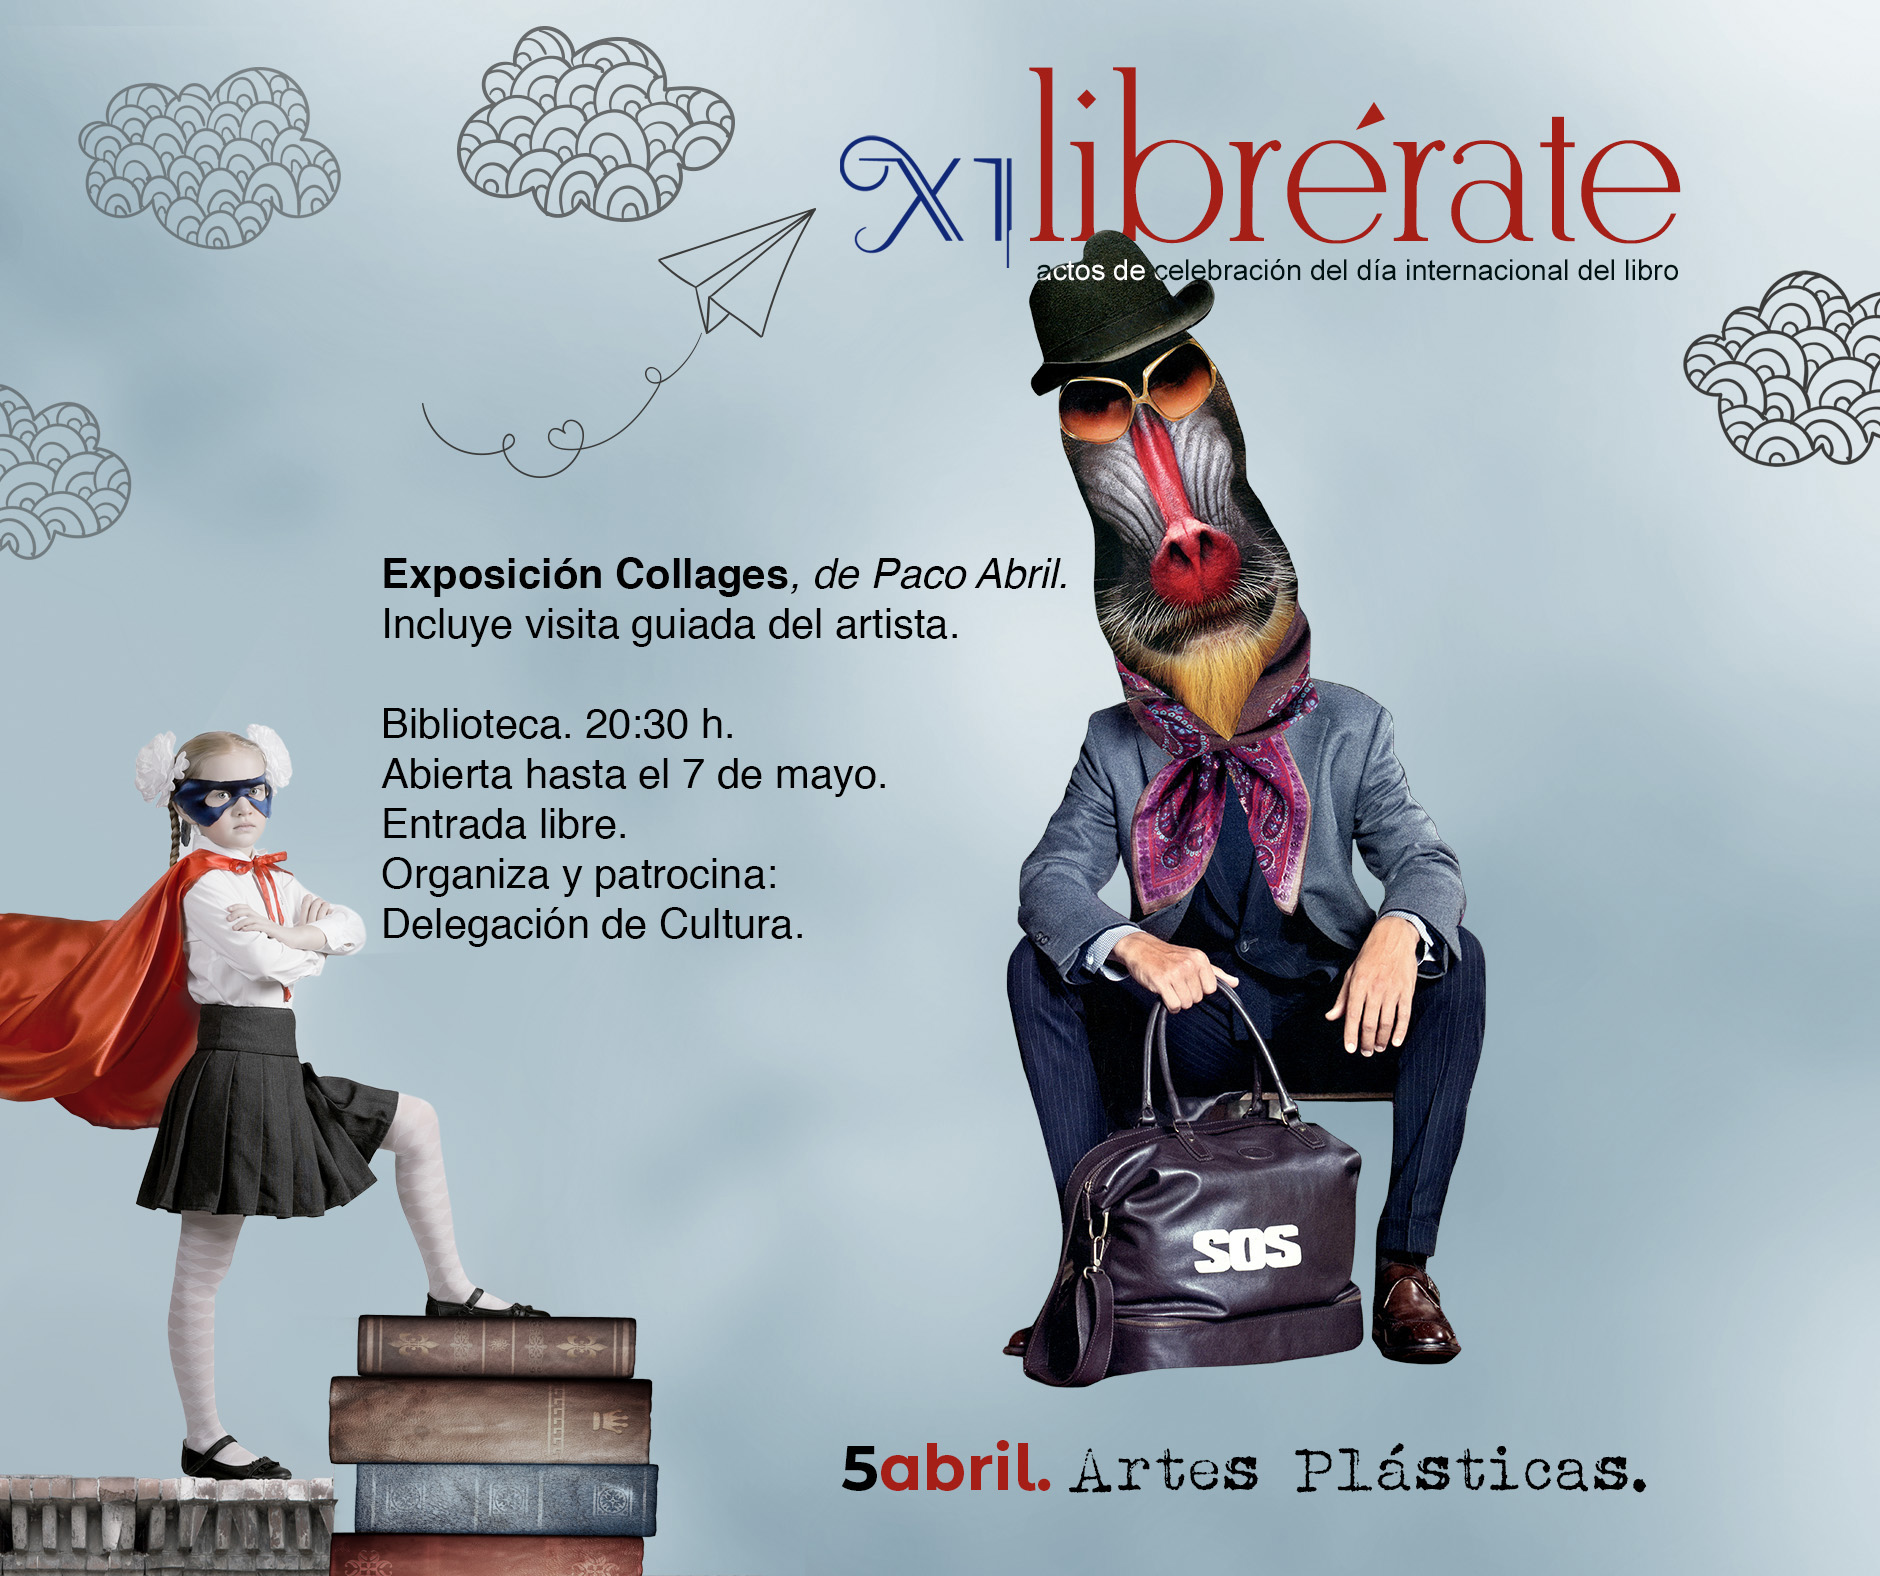 Exposición Collages, de Paco Abril @ Biblioteca Pública Municipal